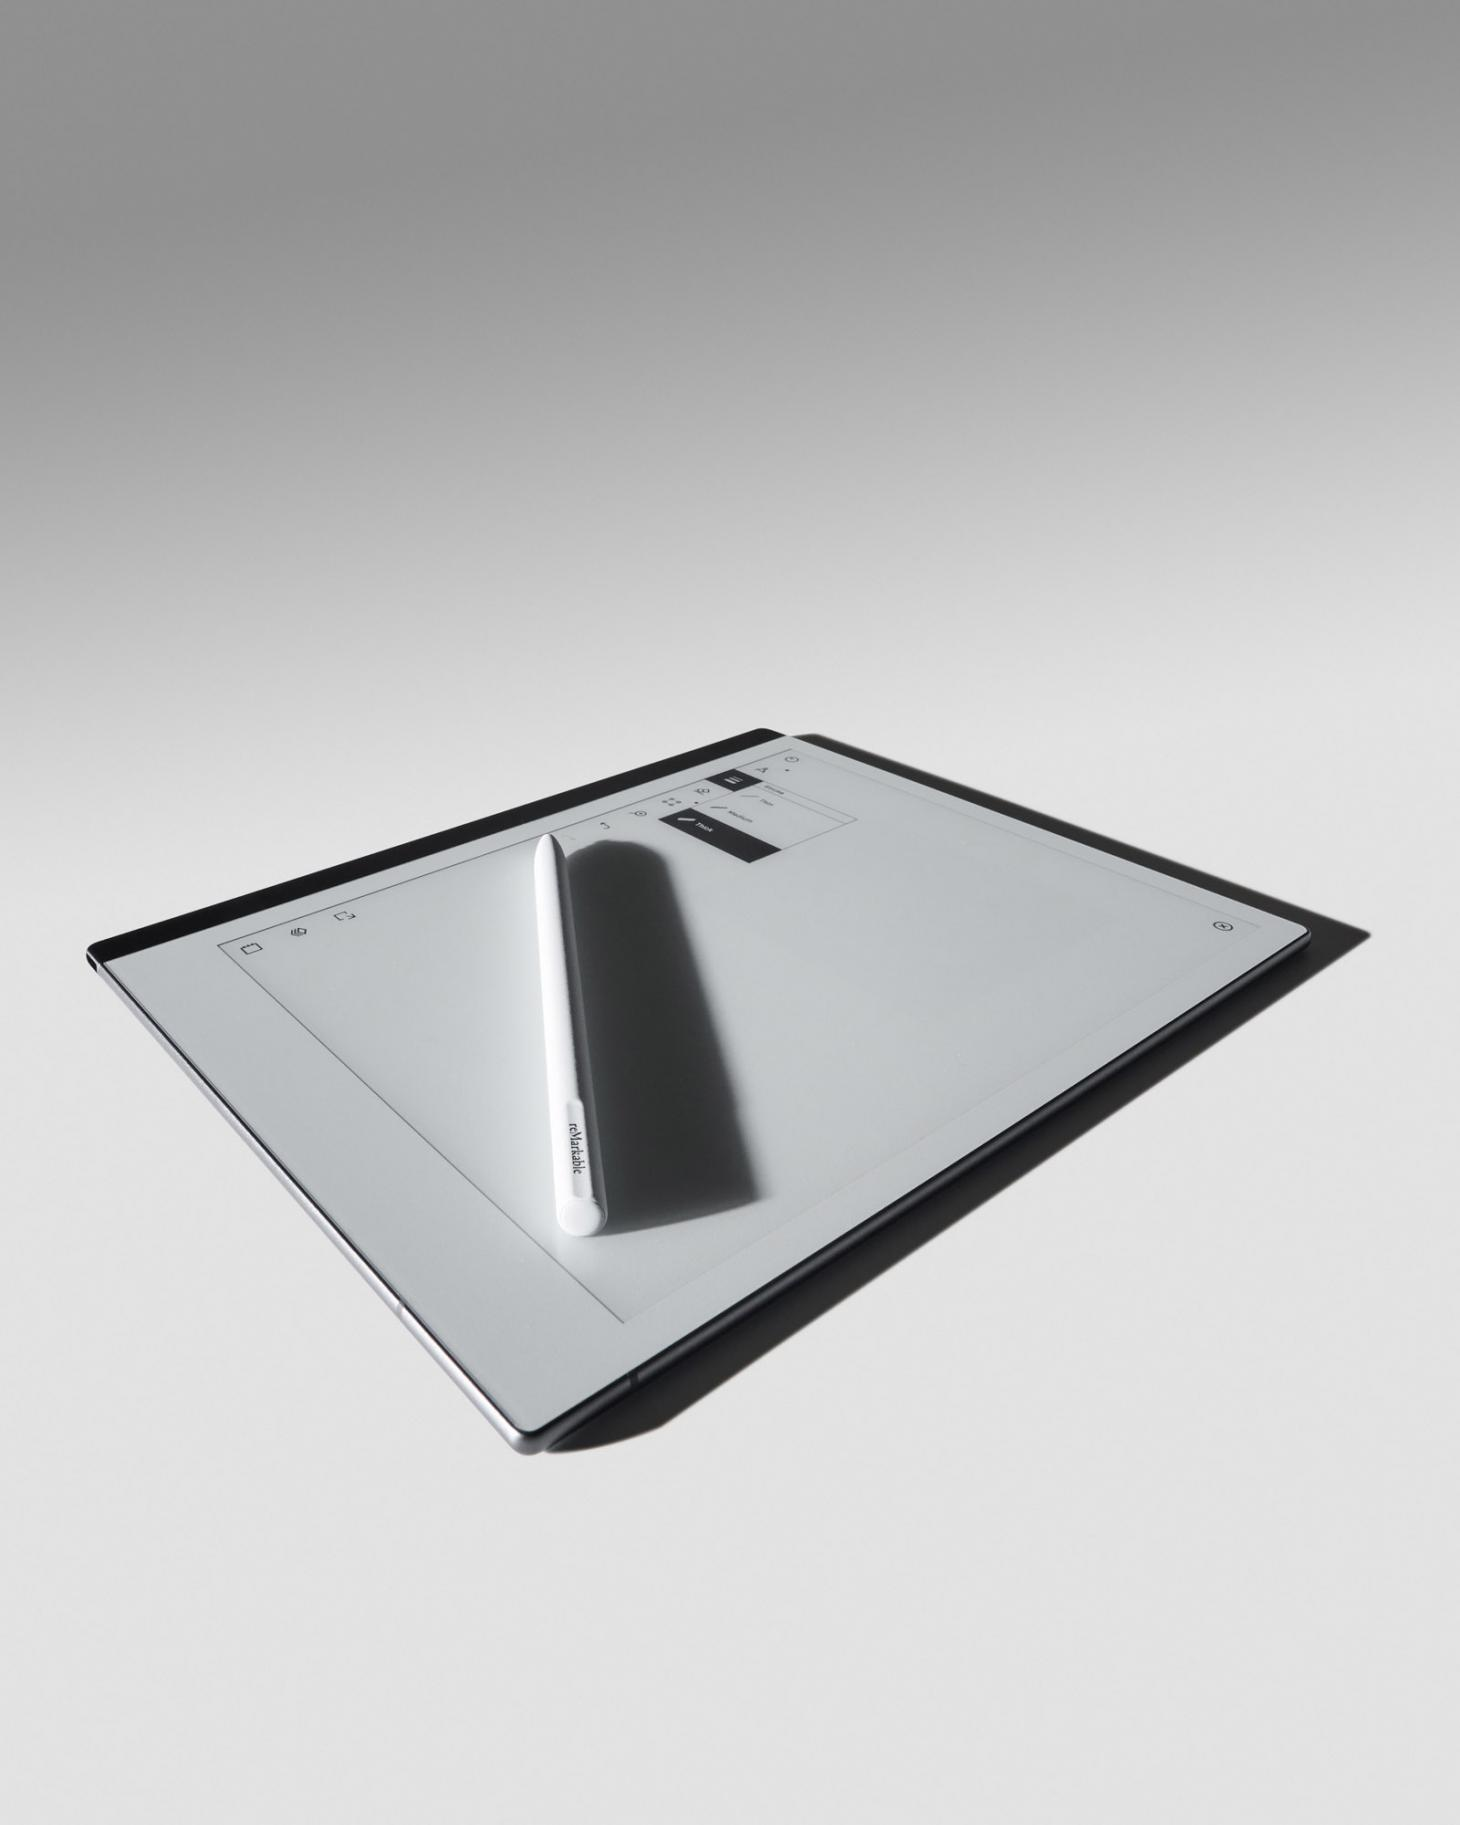 'ReMarkable 2' tablet, by Remarkable